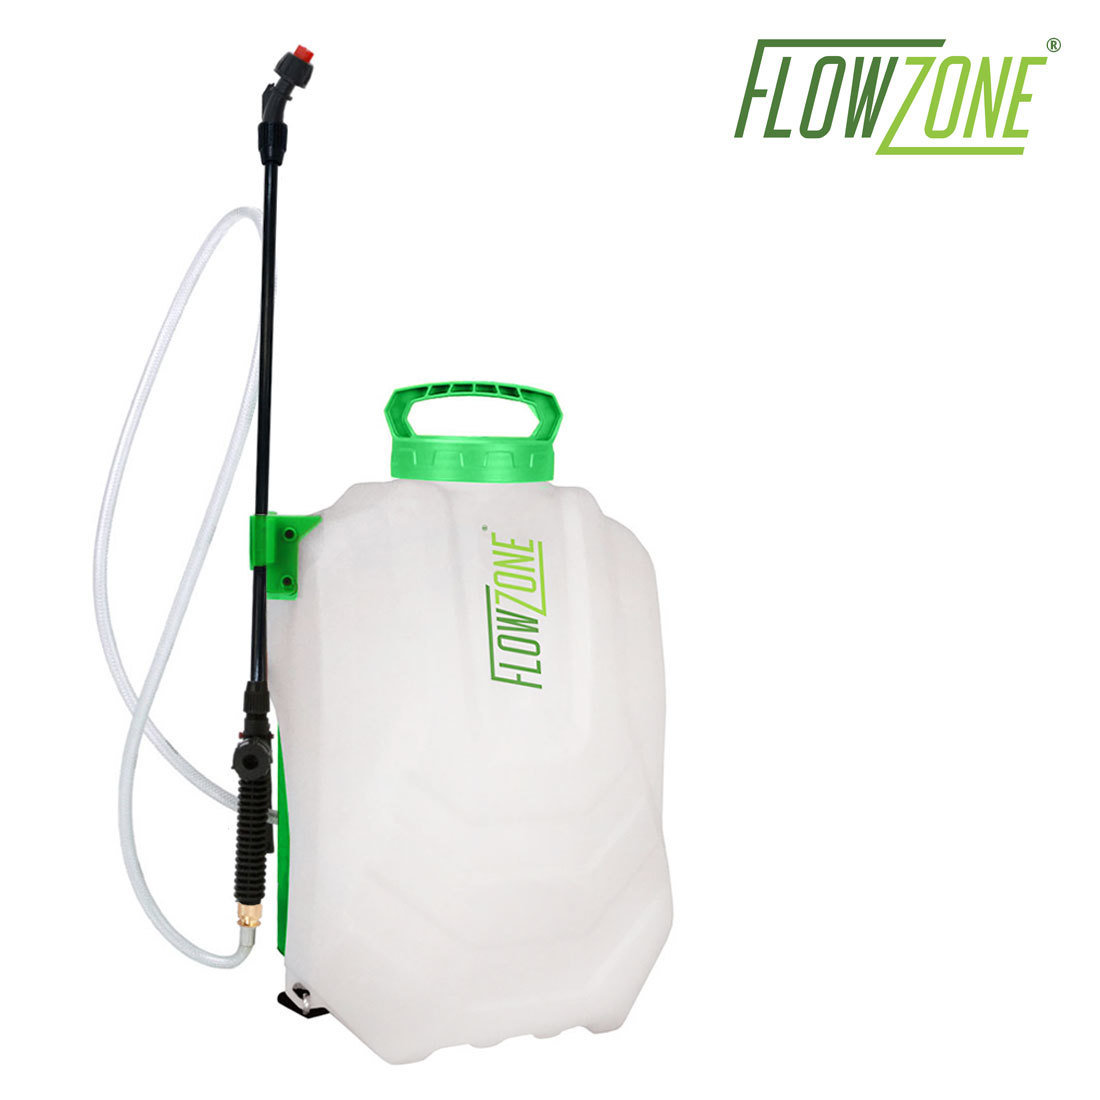 Tornado 4-Gallon Sprayer (Series 2)